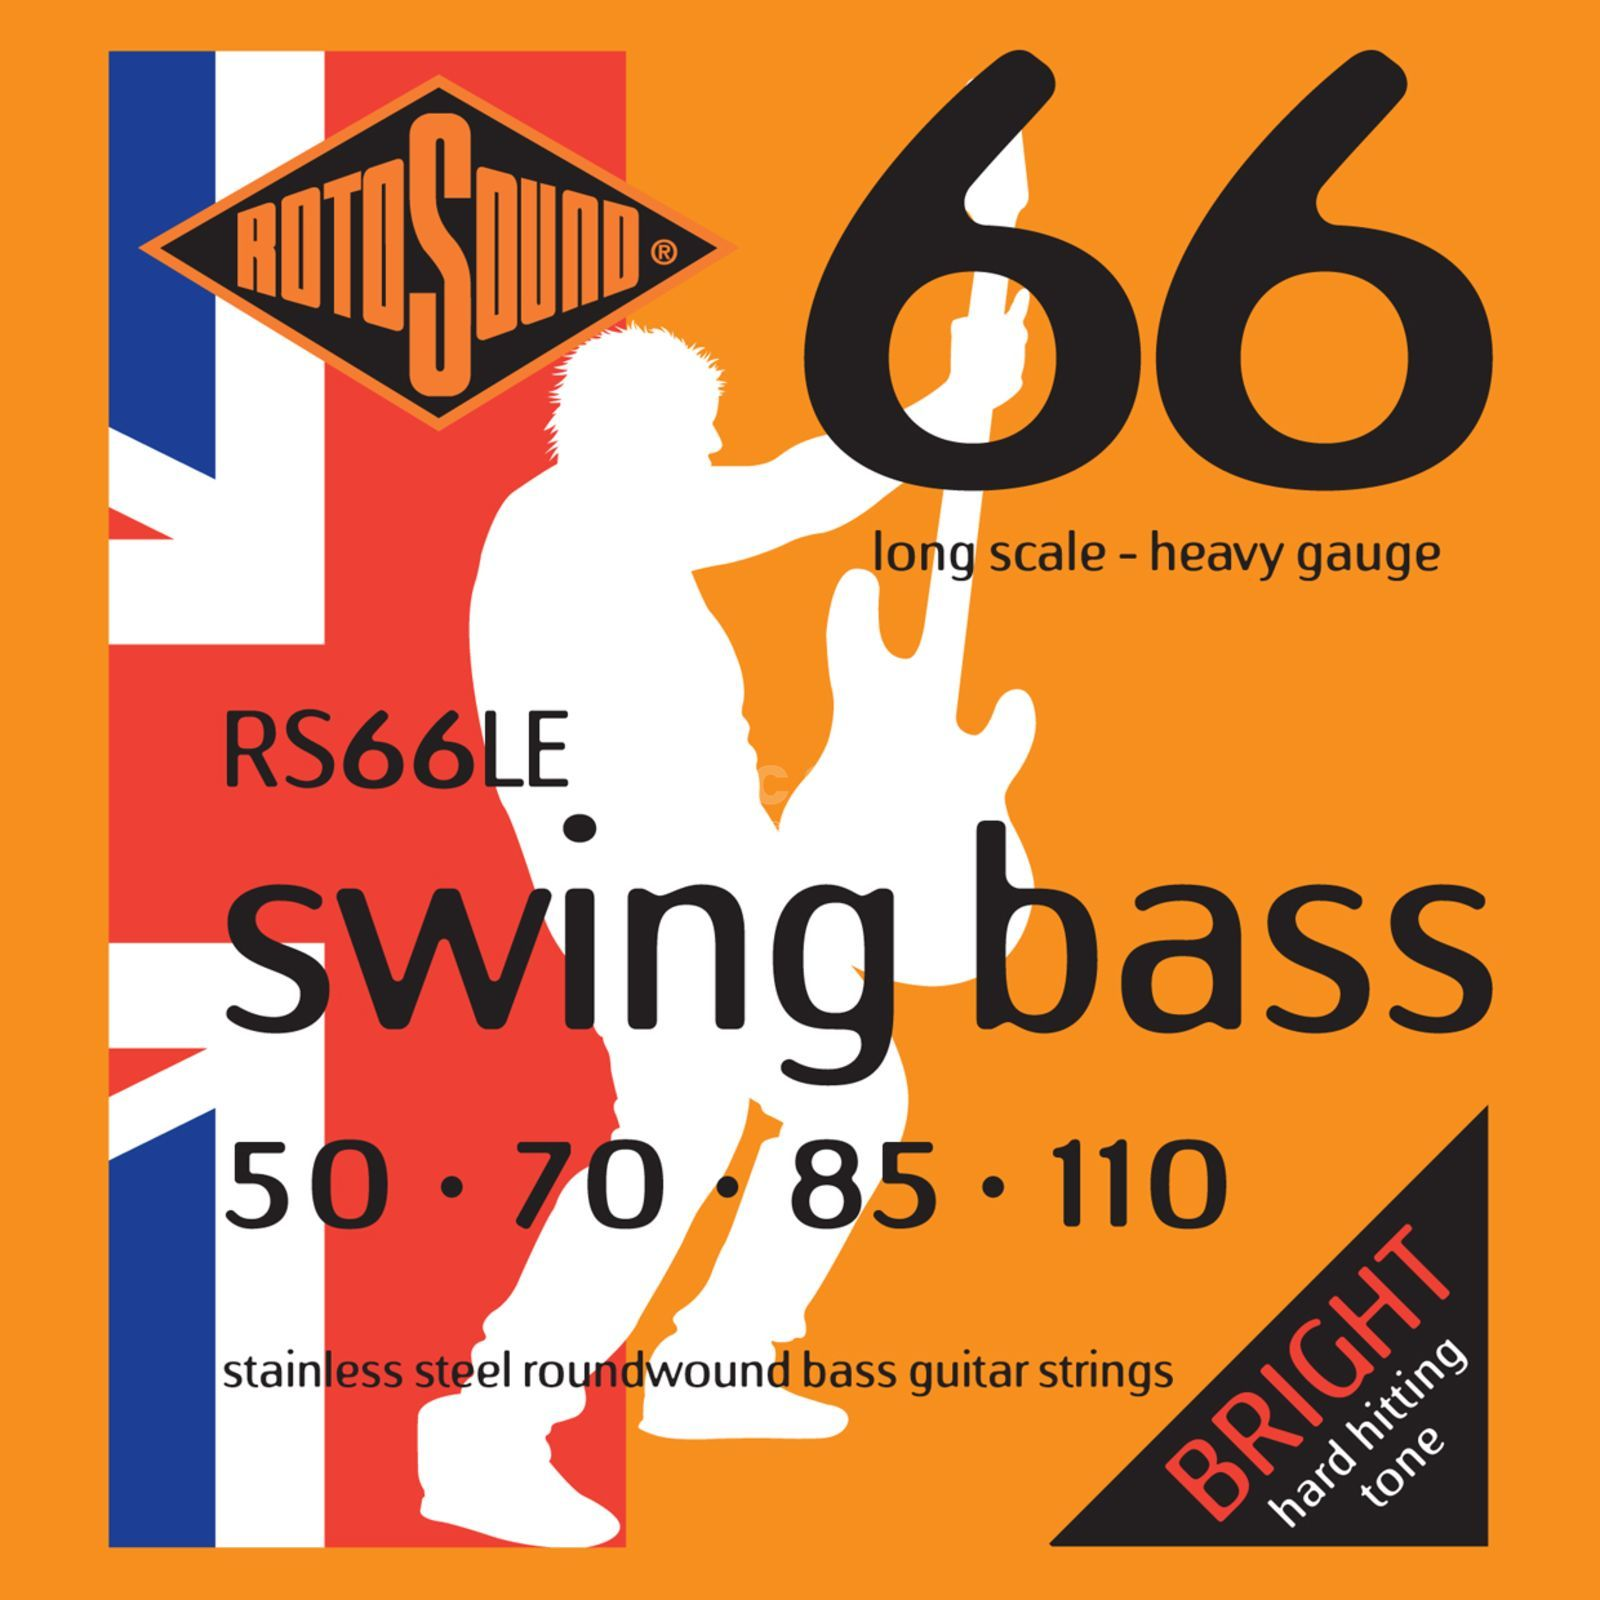 Rotosound Bass Saiten RS66LE, 4er 50-110 Swing Bass 66, Stainless Steel Produktbild